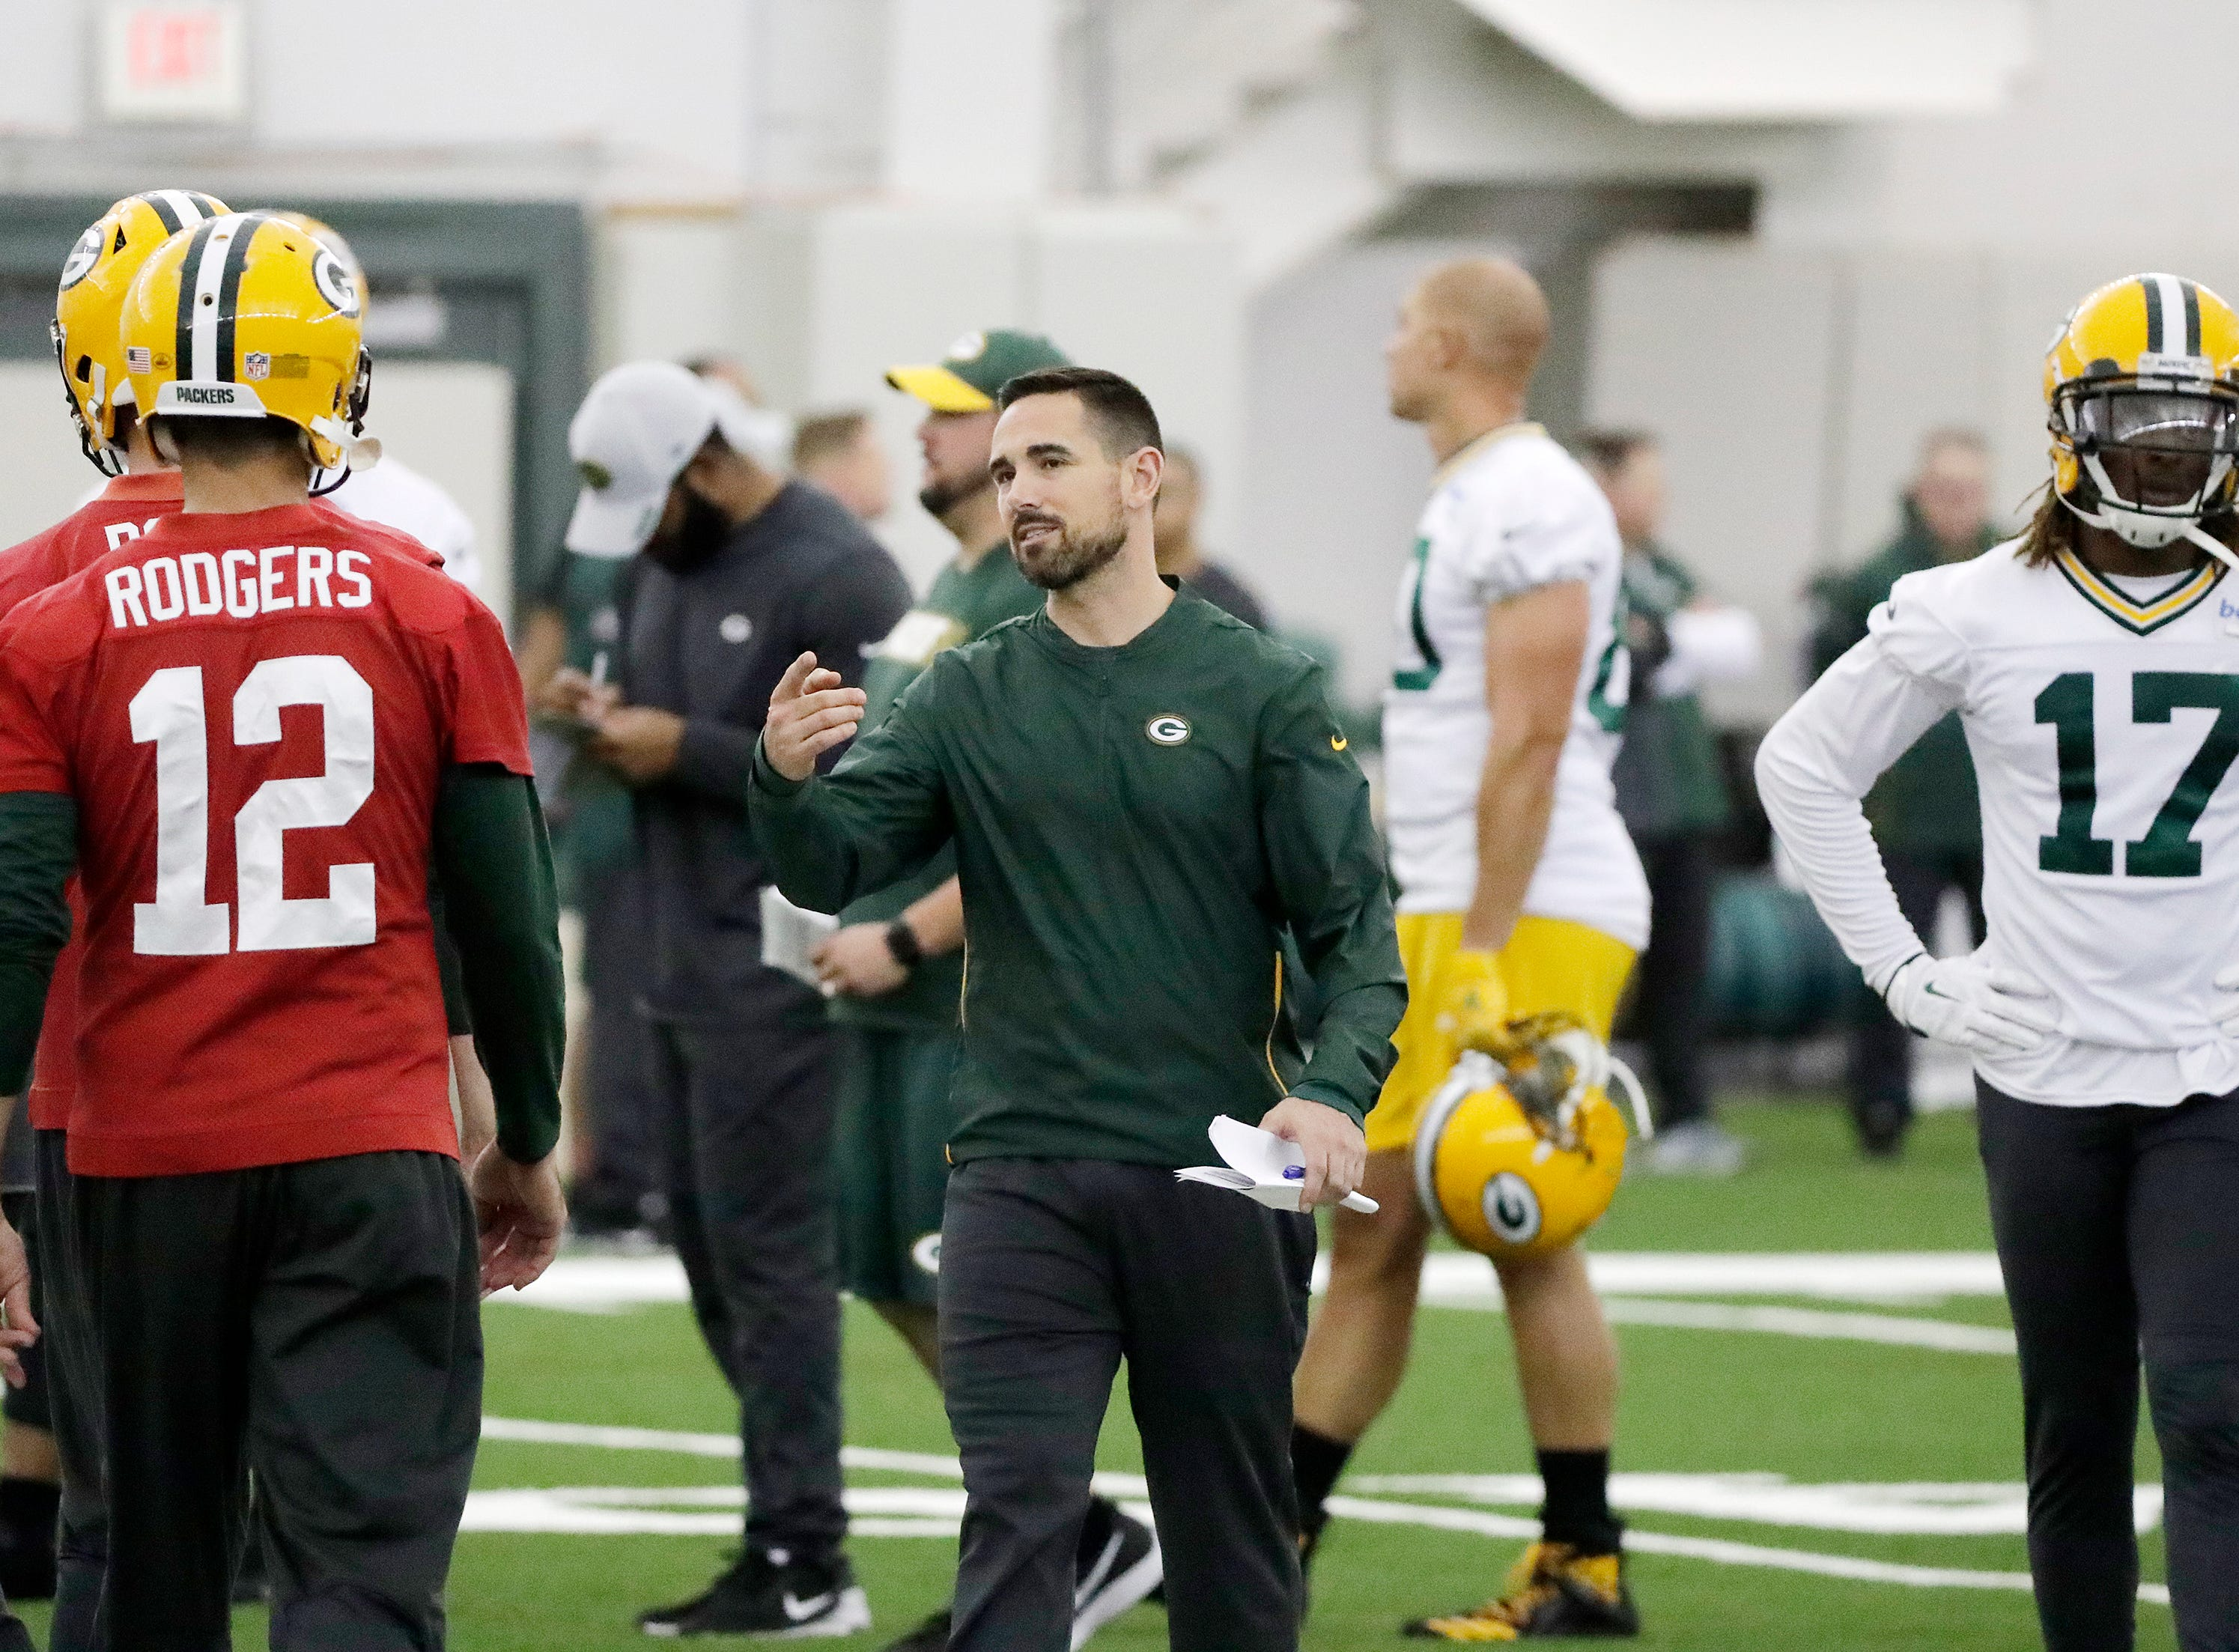 Green Bay Packers head coach Matt LaFleur talks to quarterback Aaron Rodgers (12) during a team practice at the Don Hutson Center on Wednesday, April 24, 2019 in Ashwaubenon, Wis.